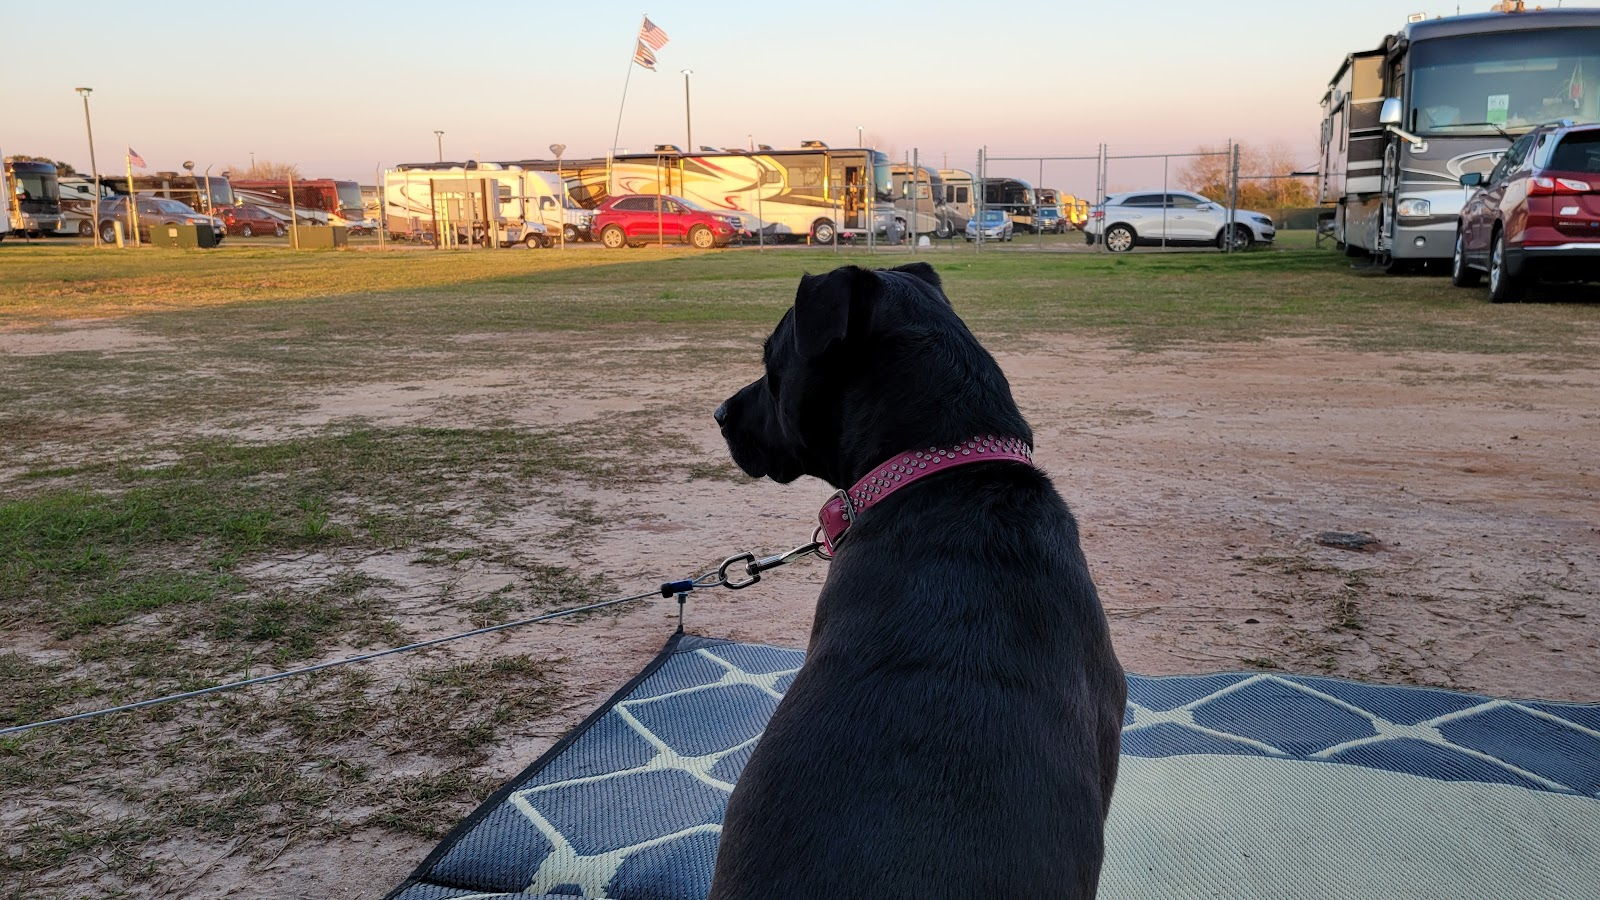 Dog sits and looks out at RVs parked in the distance